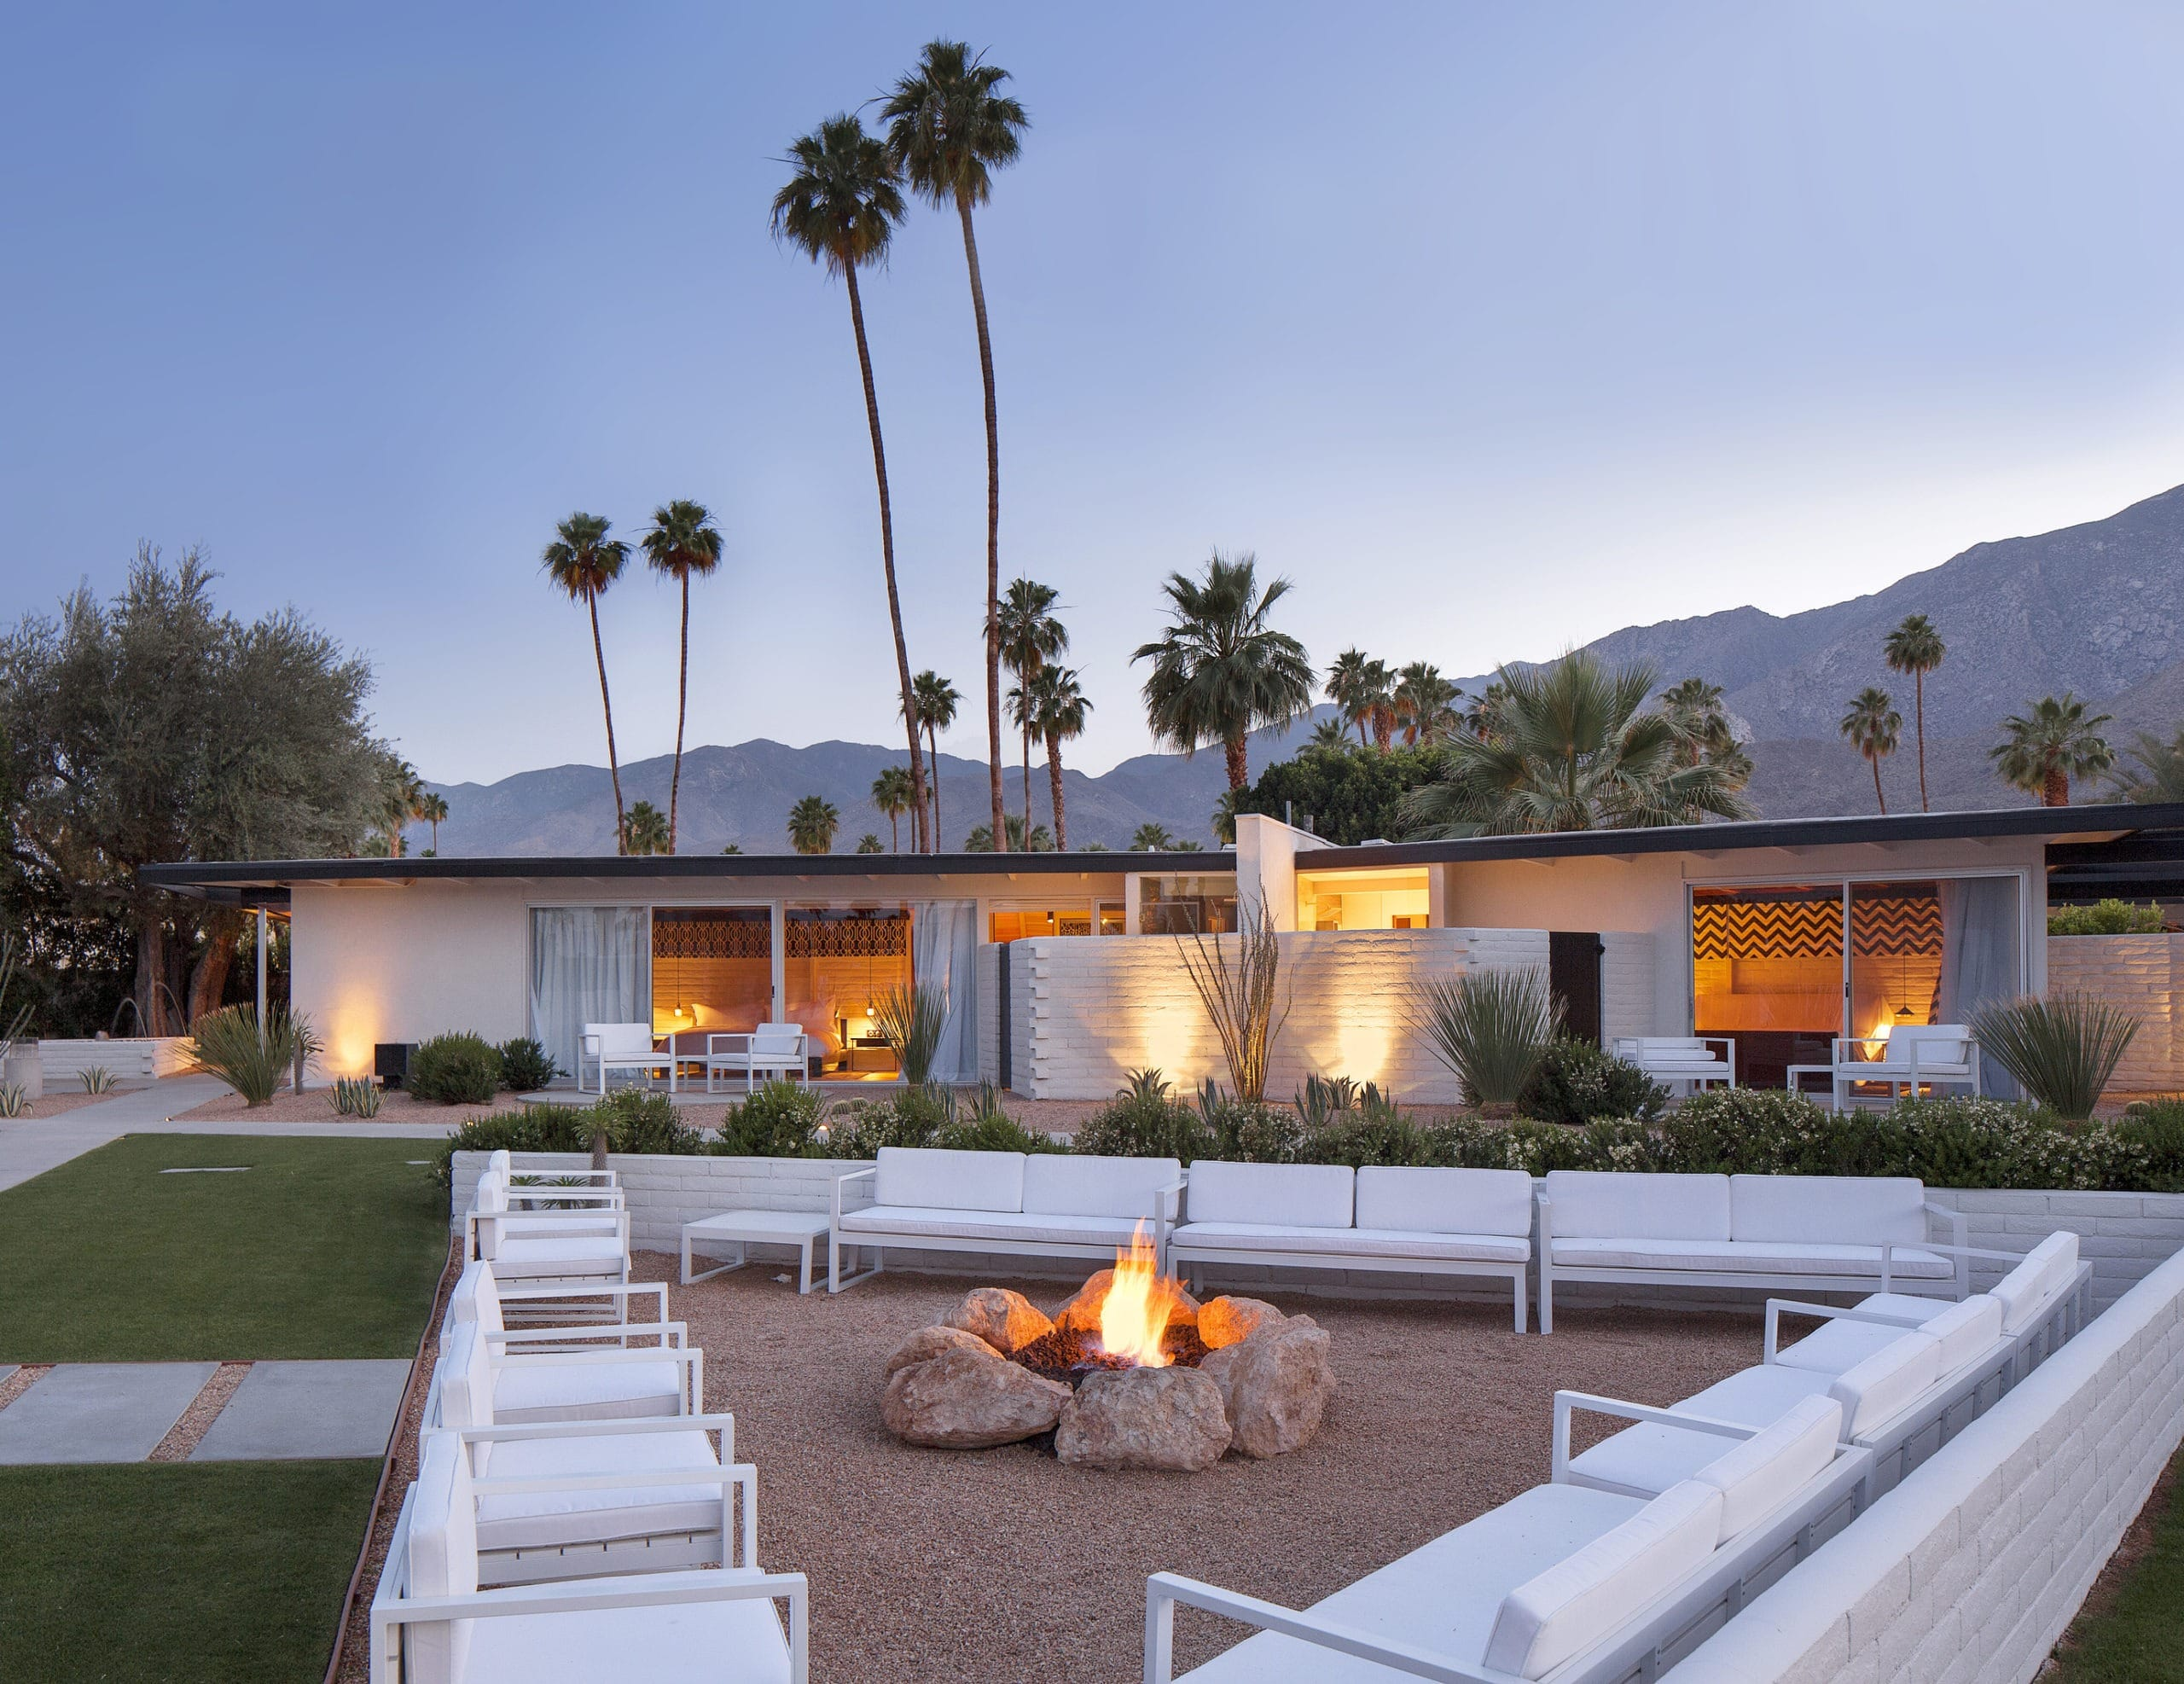 Outdoor seating area round a fire pit at L Horizon Resort and Spa in Palm Springs